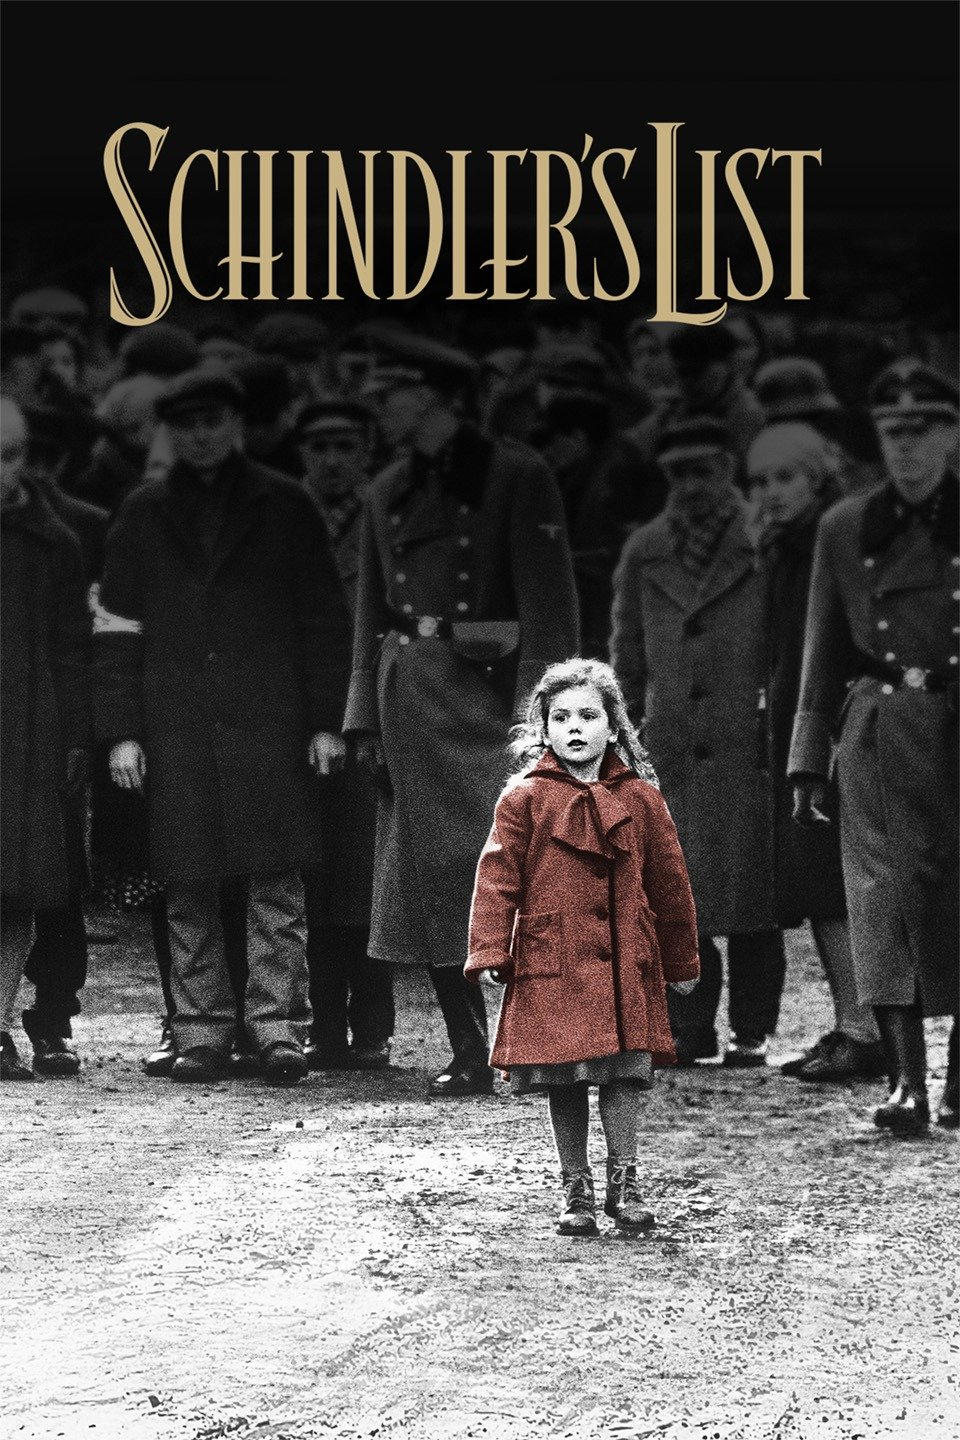 Victoria gardens schindler 39 s list for Victoria gardens amc movie times